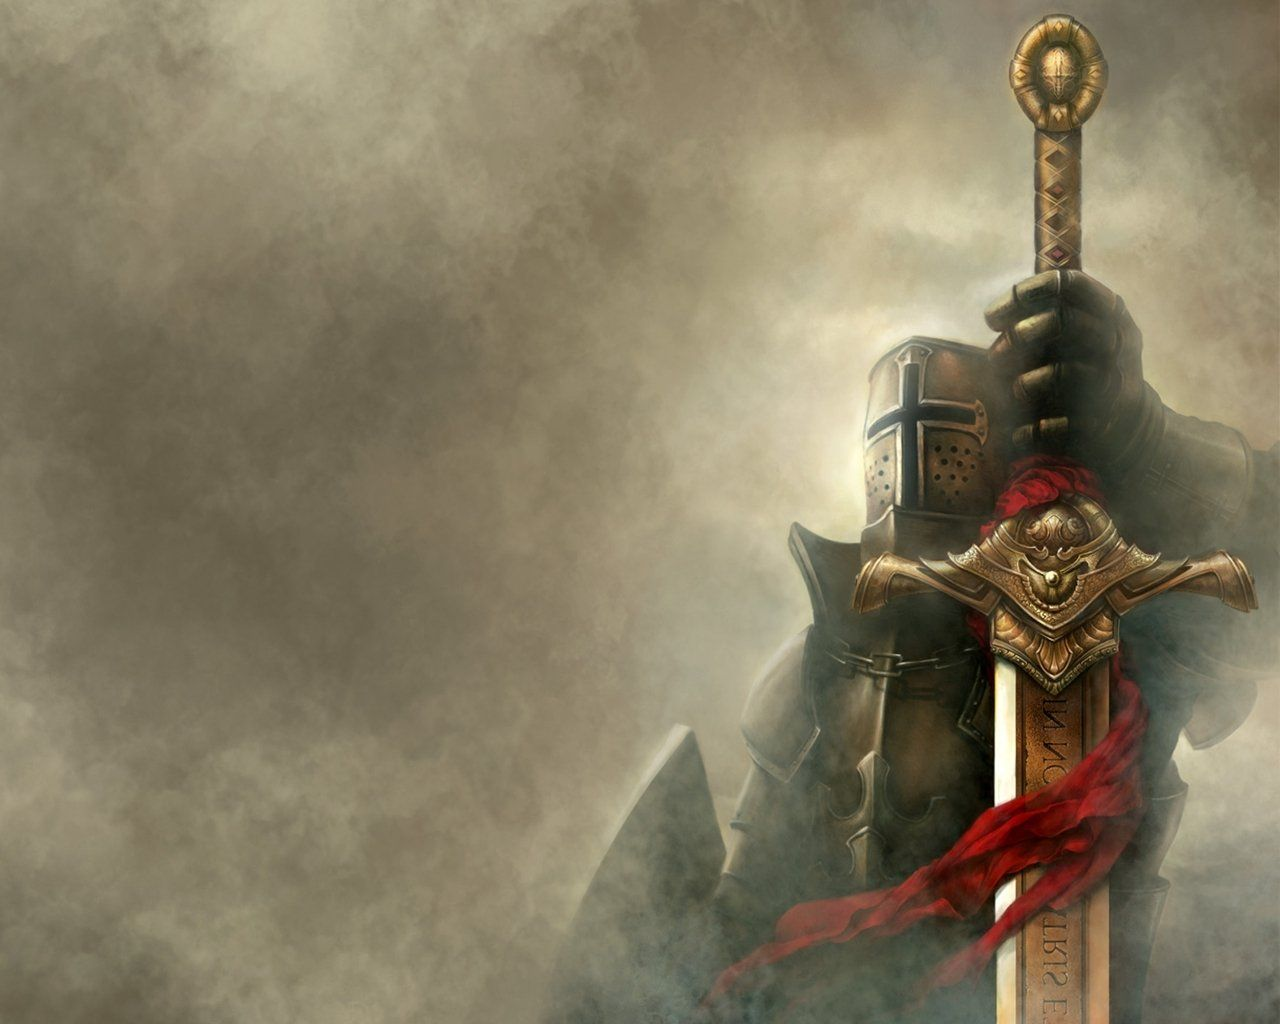 Knight Hd Wallpapers Backgrounds Wallpaper Knight Sword Fantasy Knight